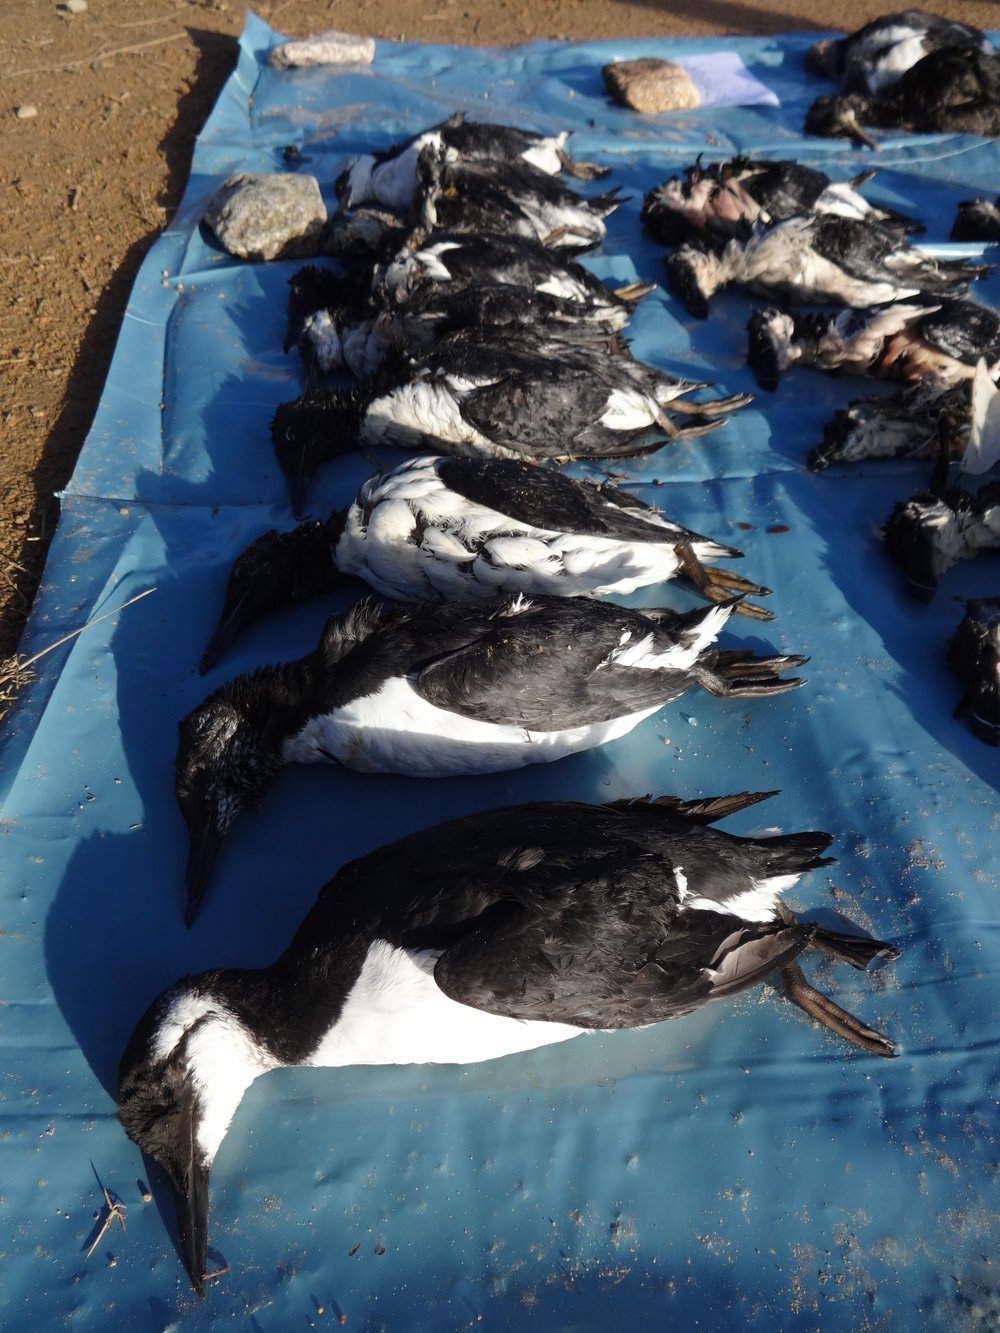 Many of the birds appeared to be in good condition. Credit: Samantha Andrews/Ocean Oculus